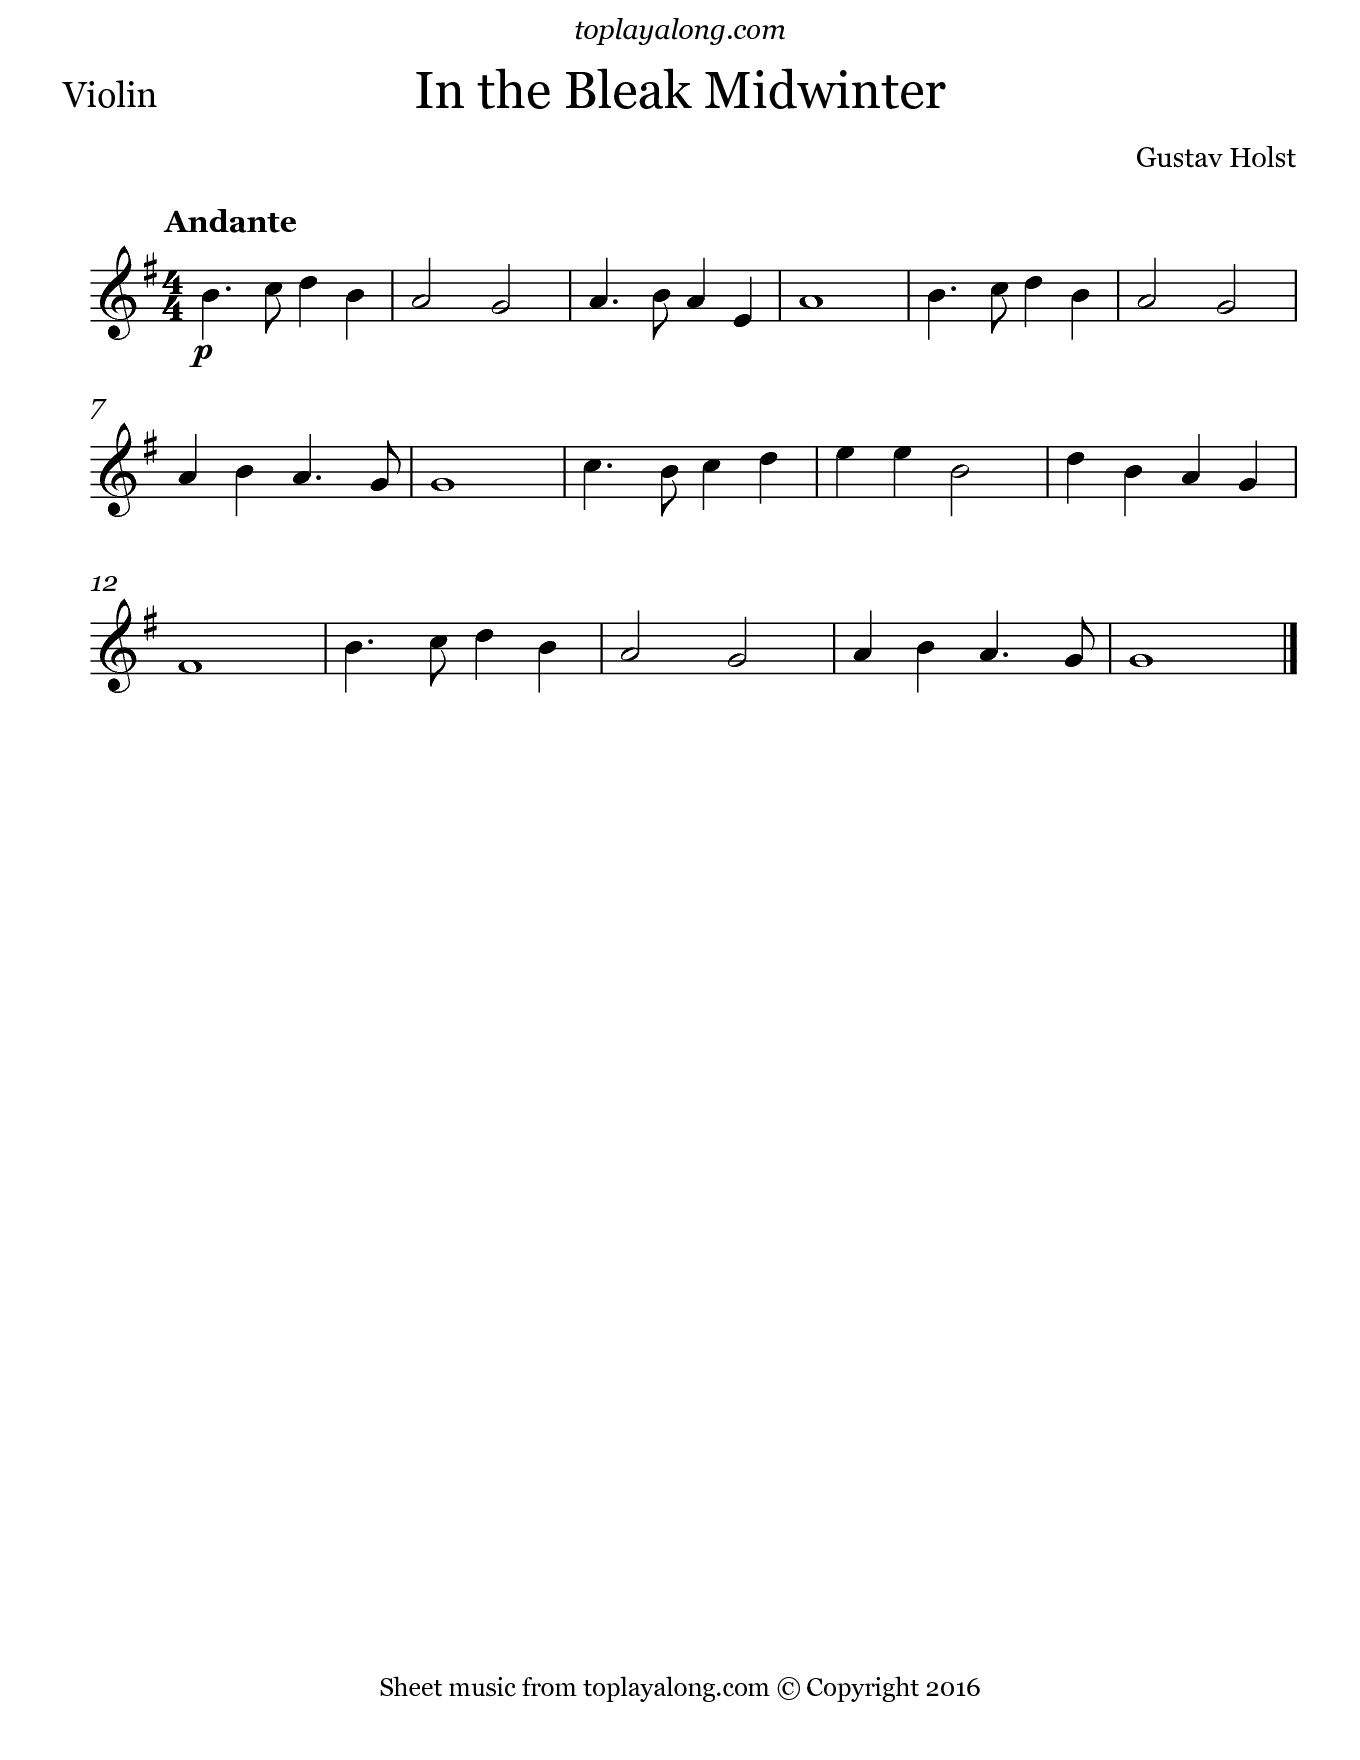 In the Bleak Midwinter by Holst. Sheet music for Violin, page 1.